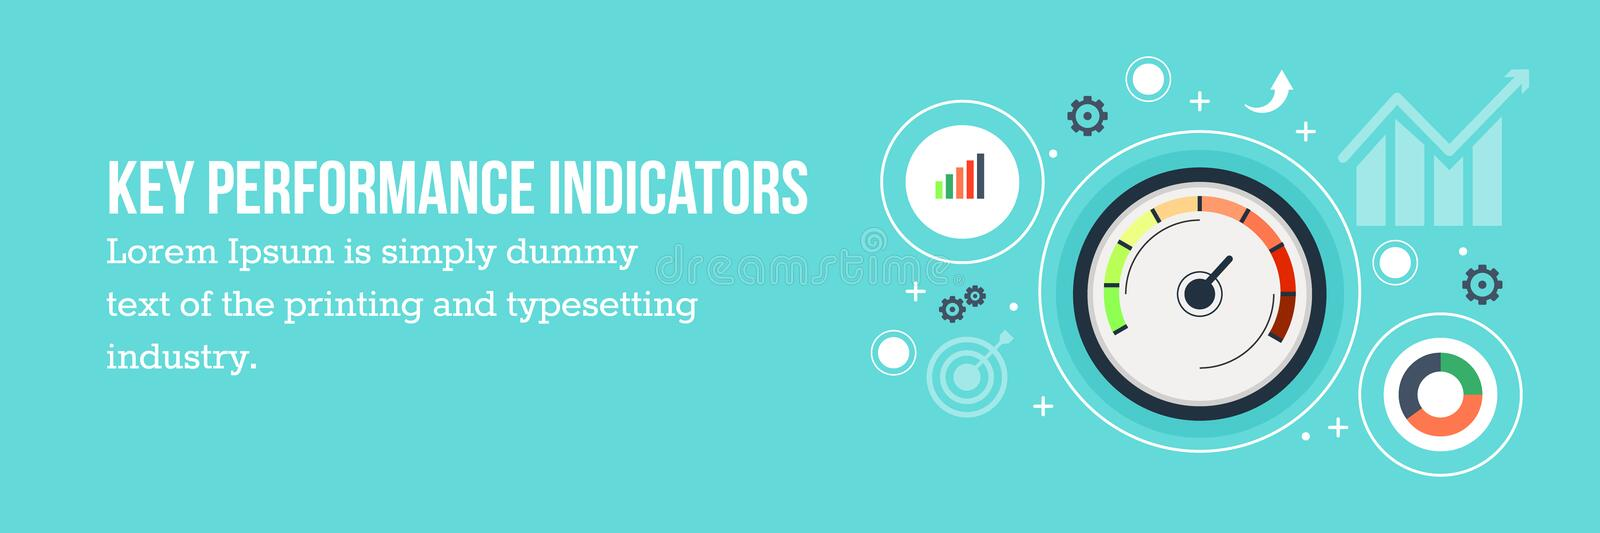 KPI - Key performance indicators flat design web banner. royalty free stock images